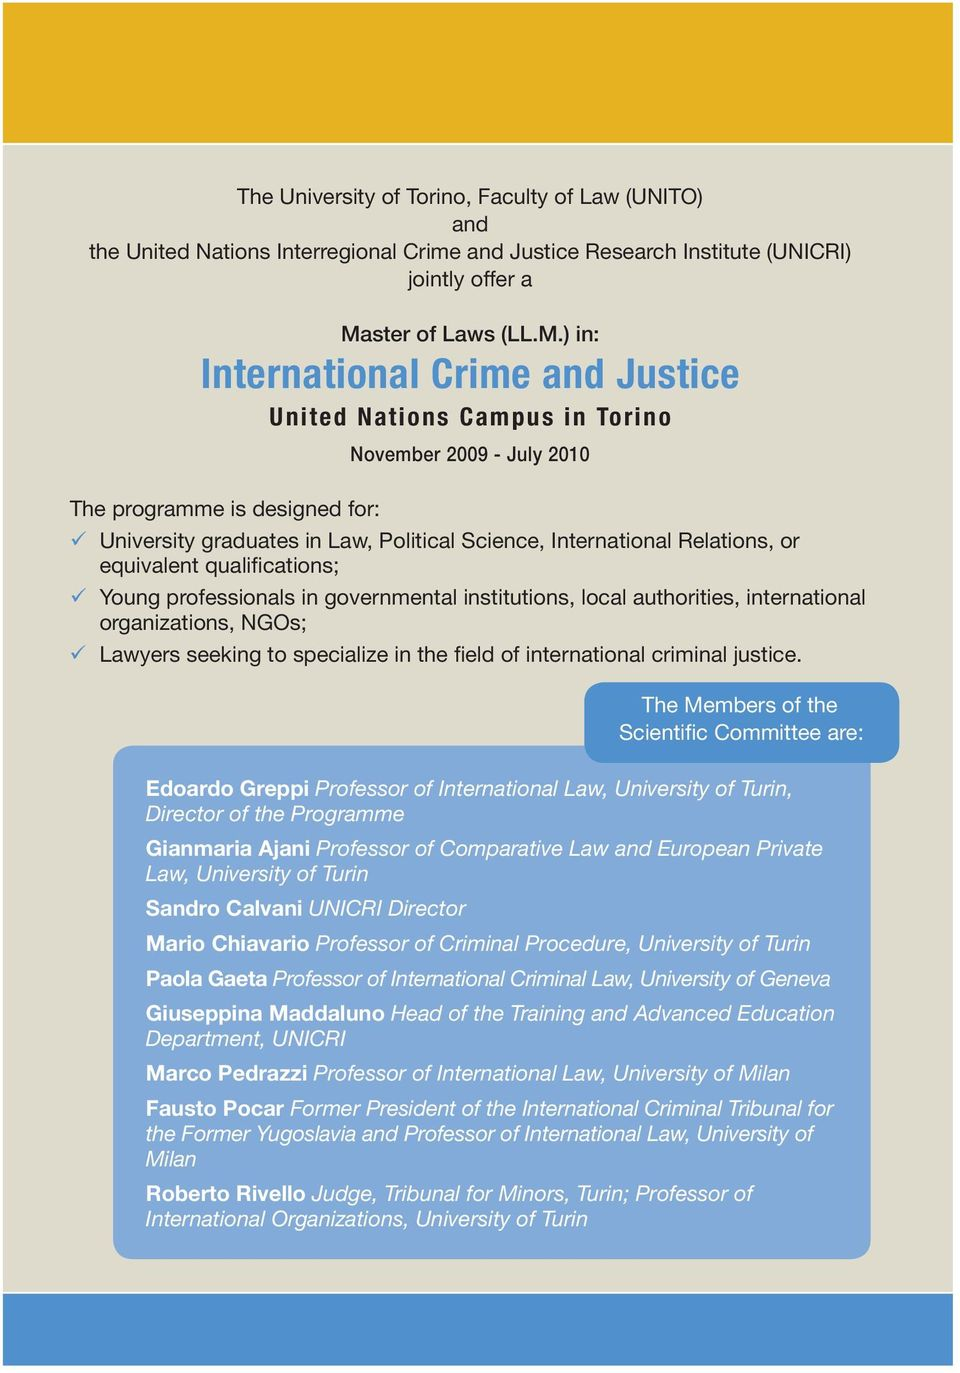 ) in: International Crime and Justice United Nations Campus in Torino November 2009 - July 2010 9 University graduates in Law, Political Science, International Relations, or equivalent